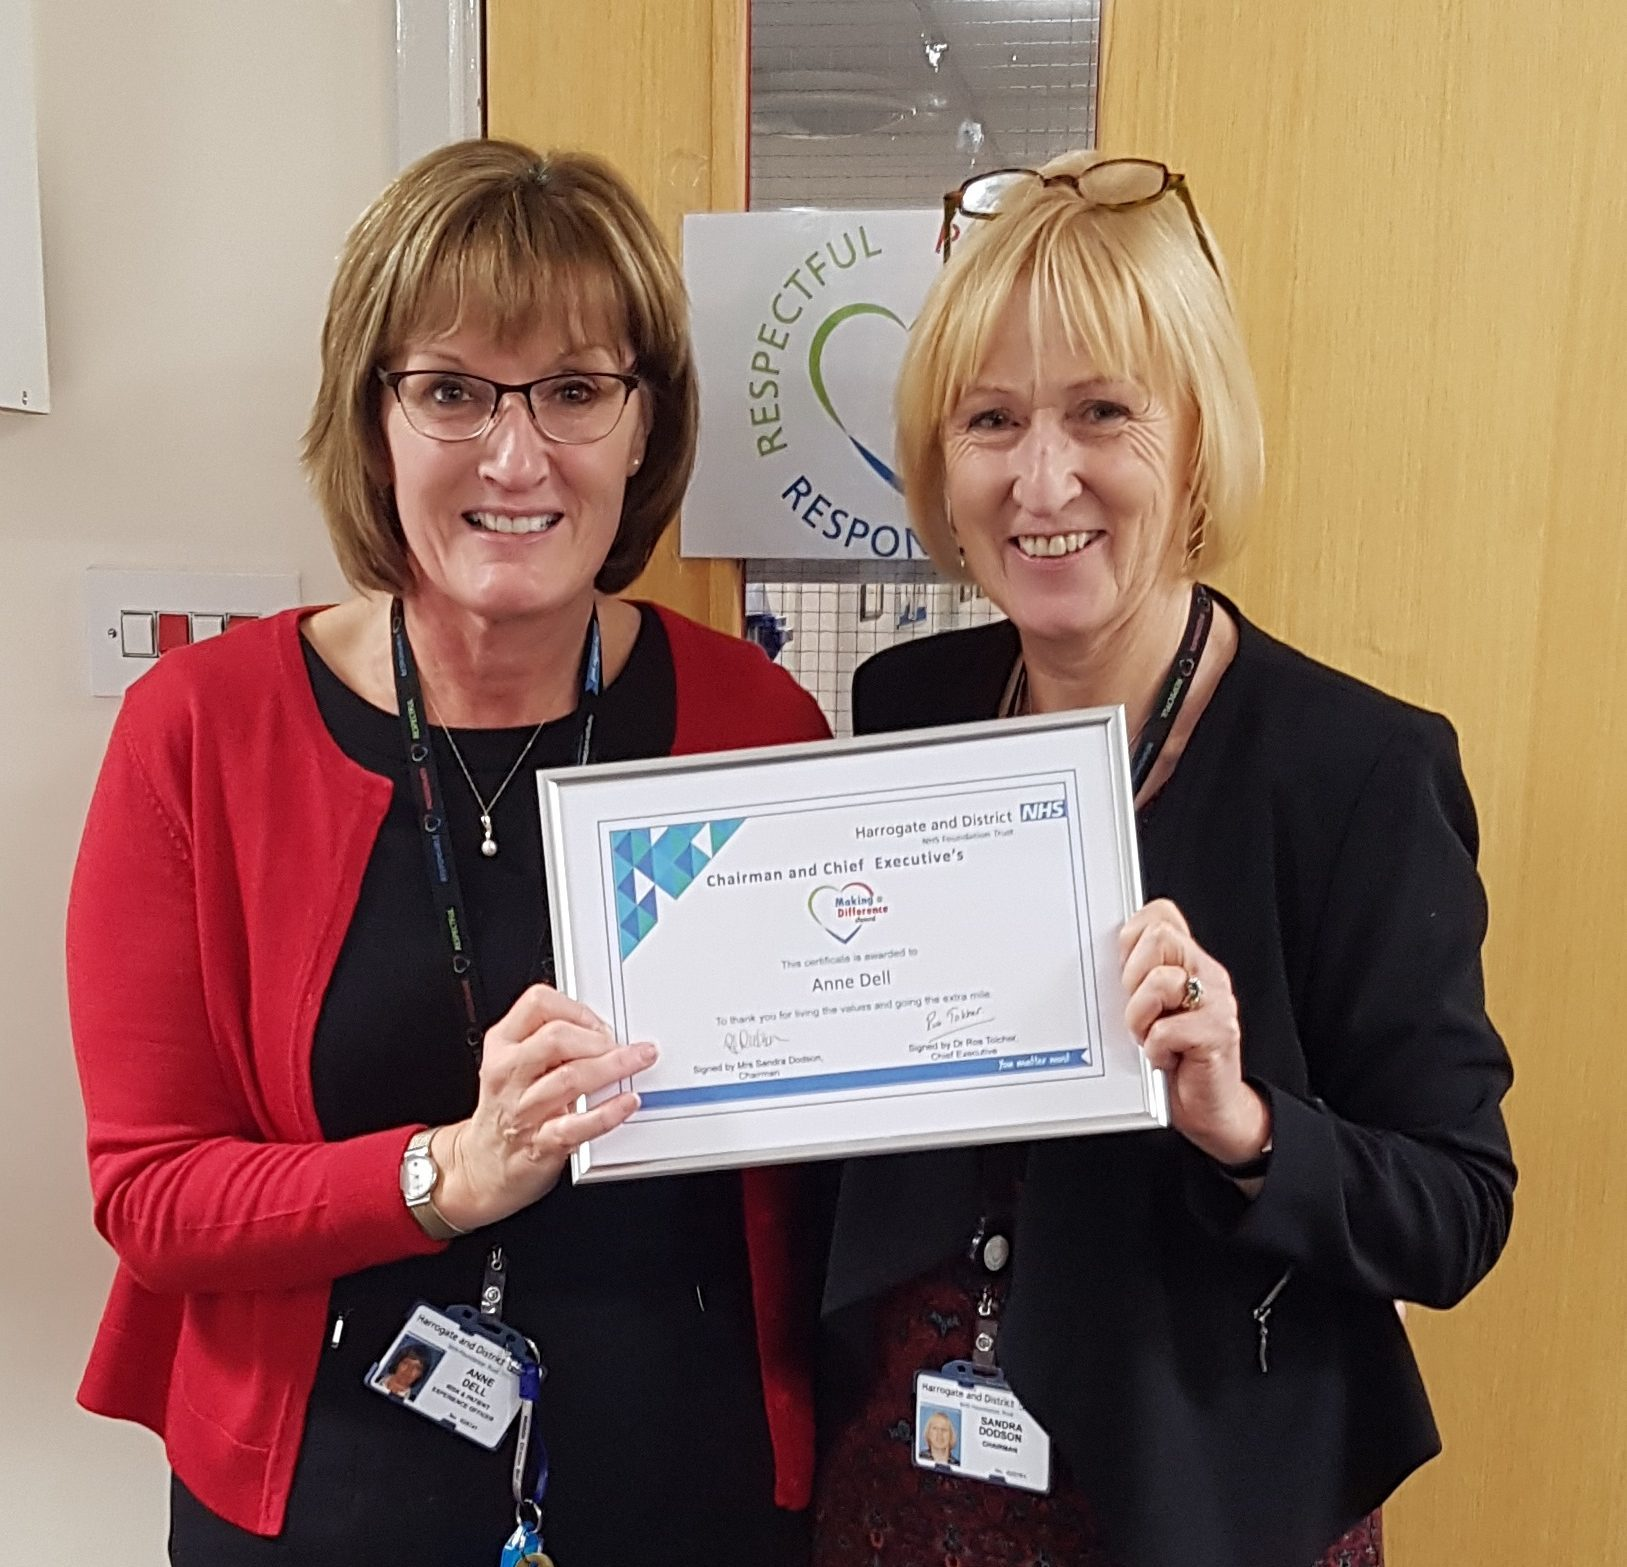 Anne Dell collecting her making a difference award